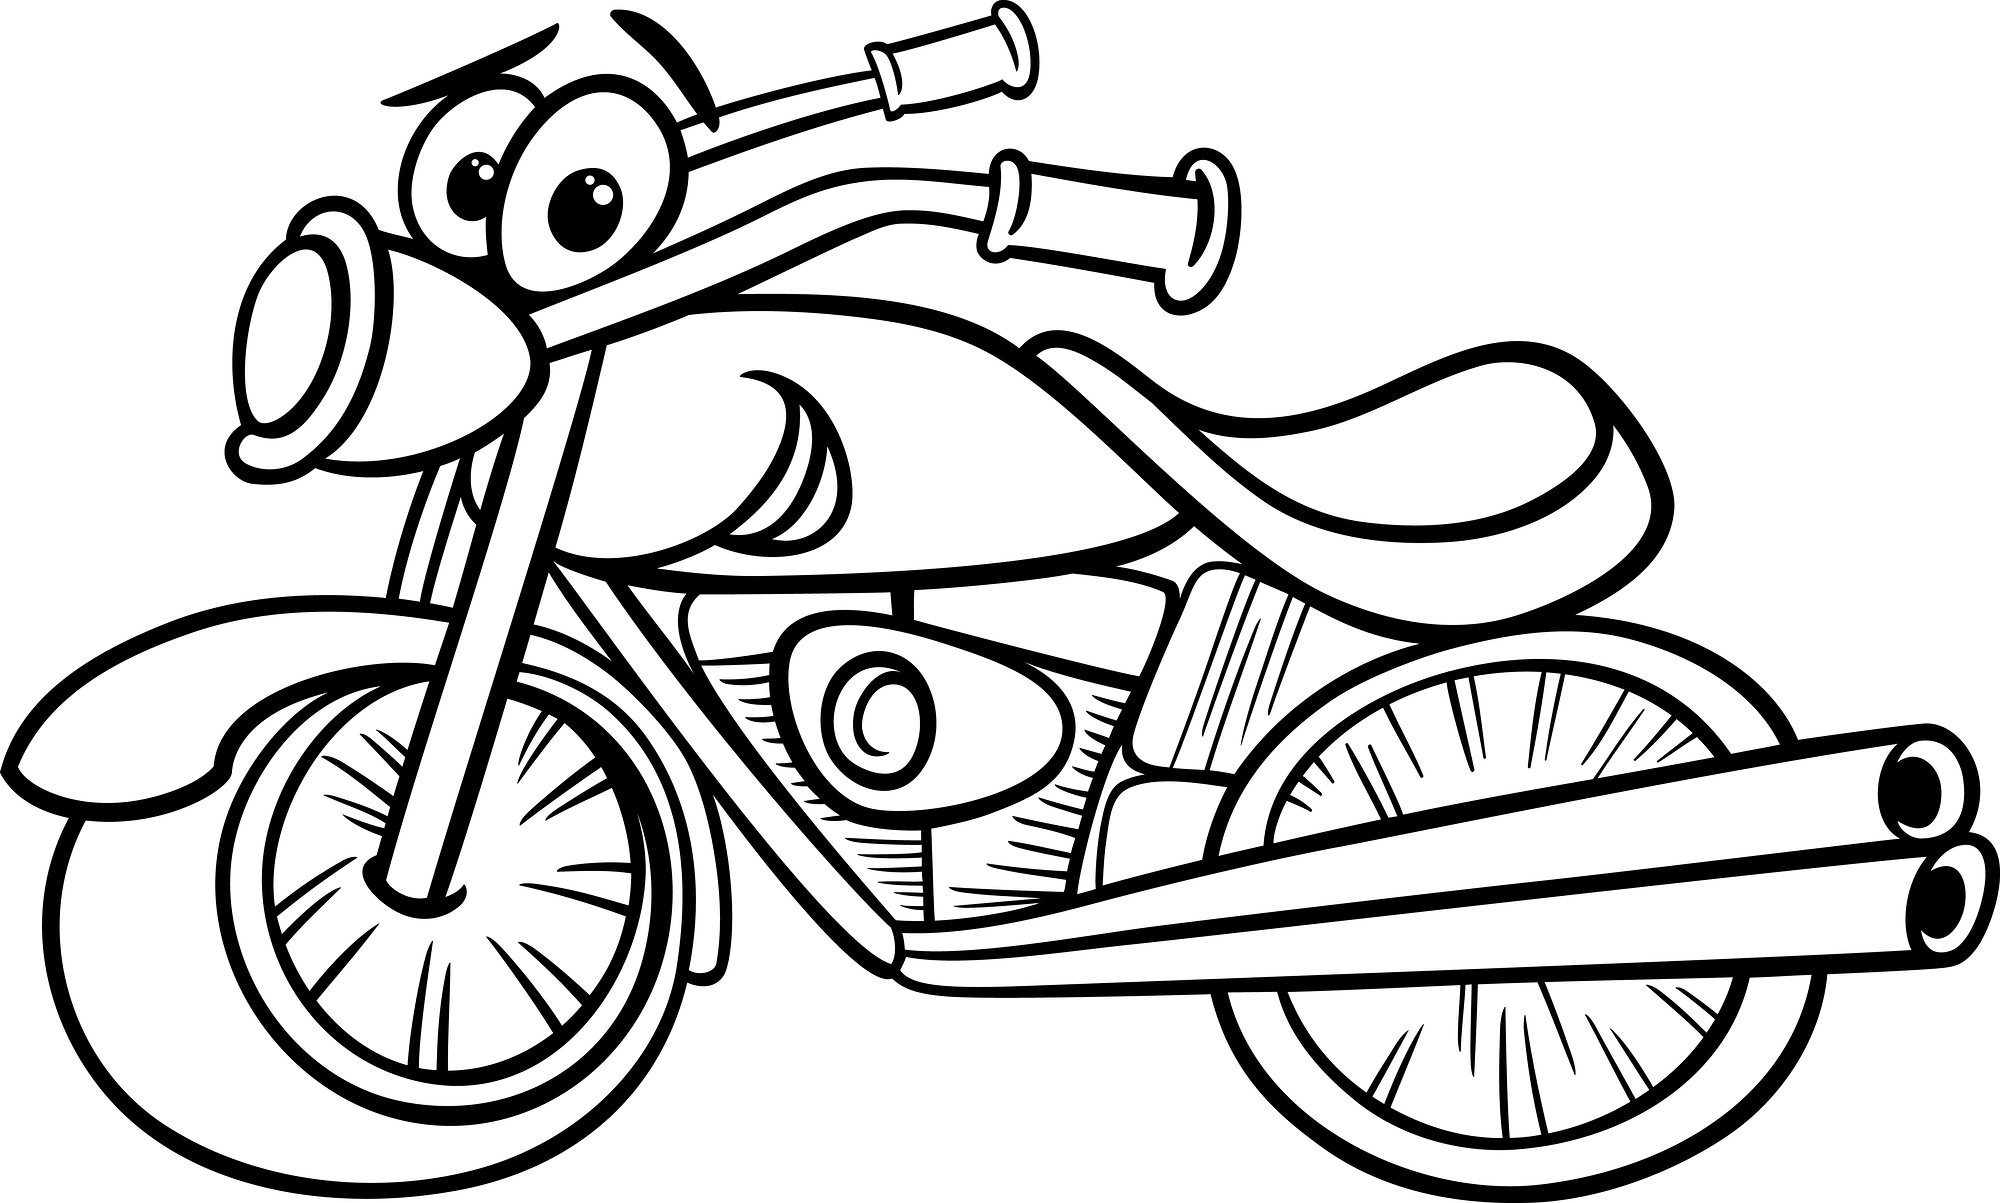 Road trip ideas for kids travel snacks games my life for Coloring pages bikes